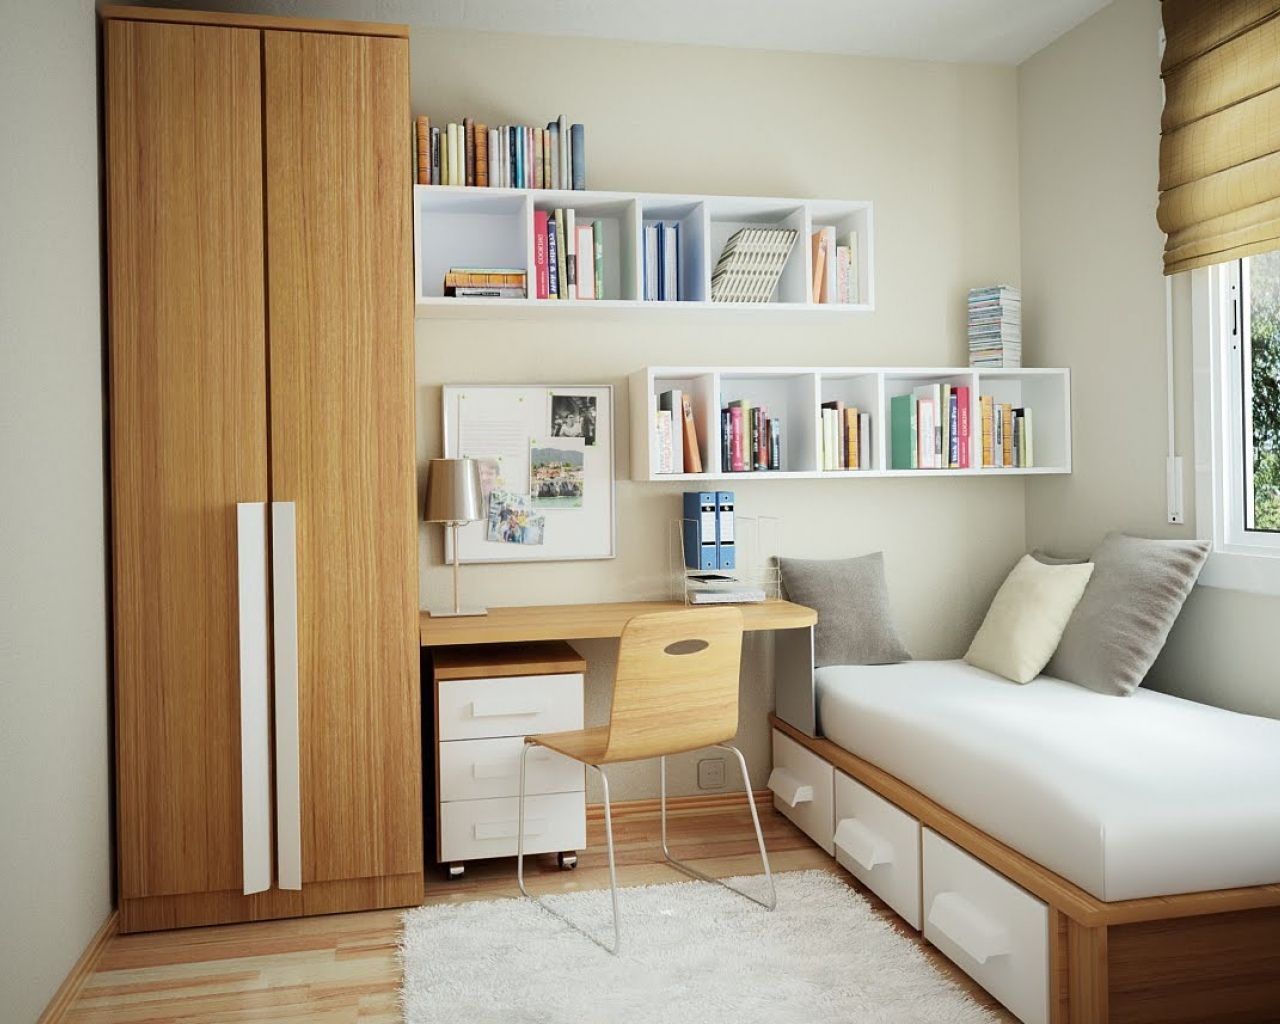 10 12 bedroom layout google search new home ideas pinterest small home office design office and workspace home decorating ideas small spaces optimum small home office design tiny unique desk e combinico